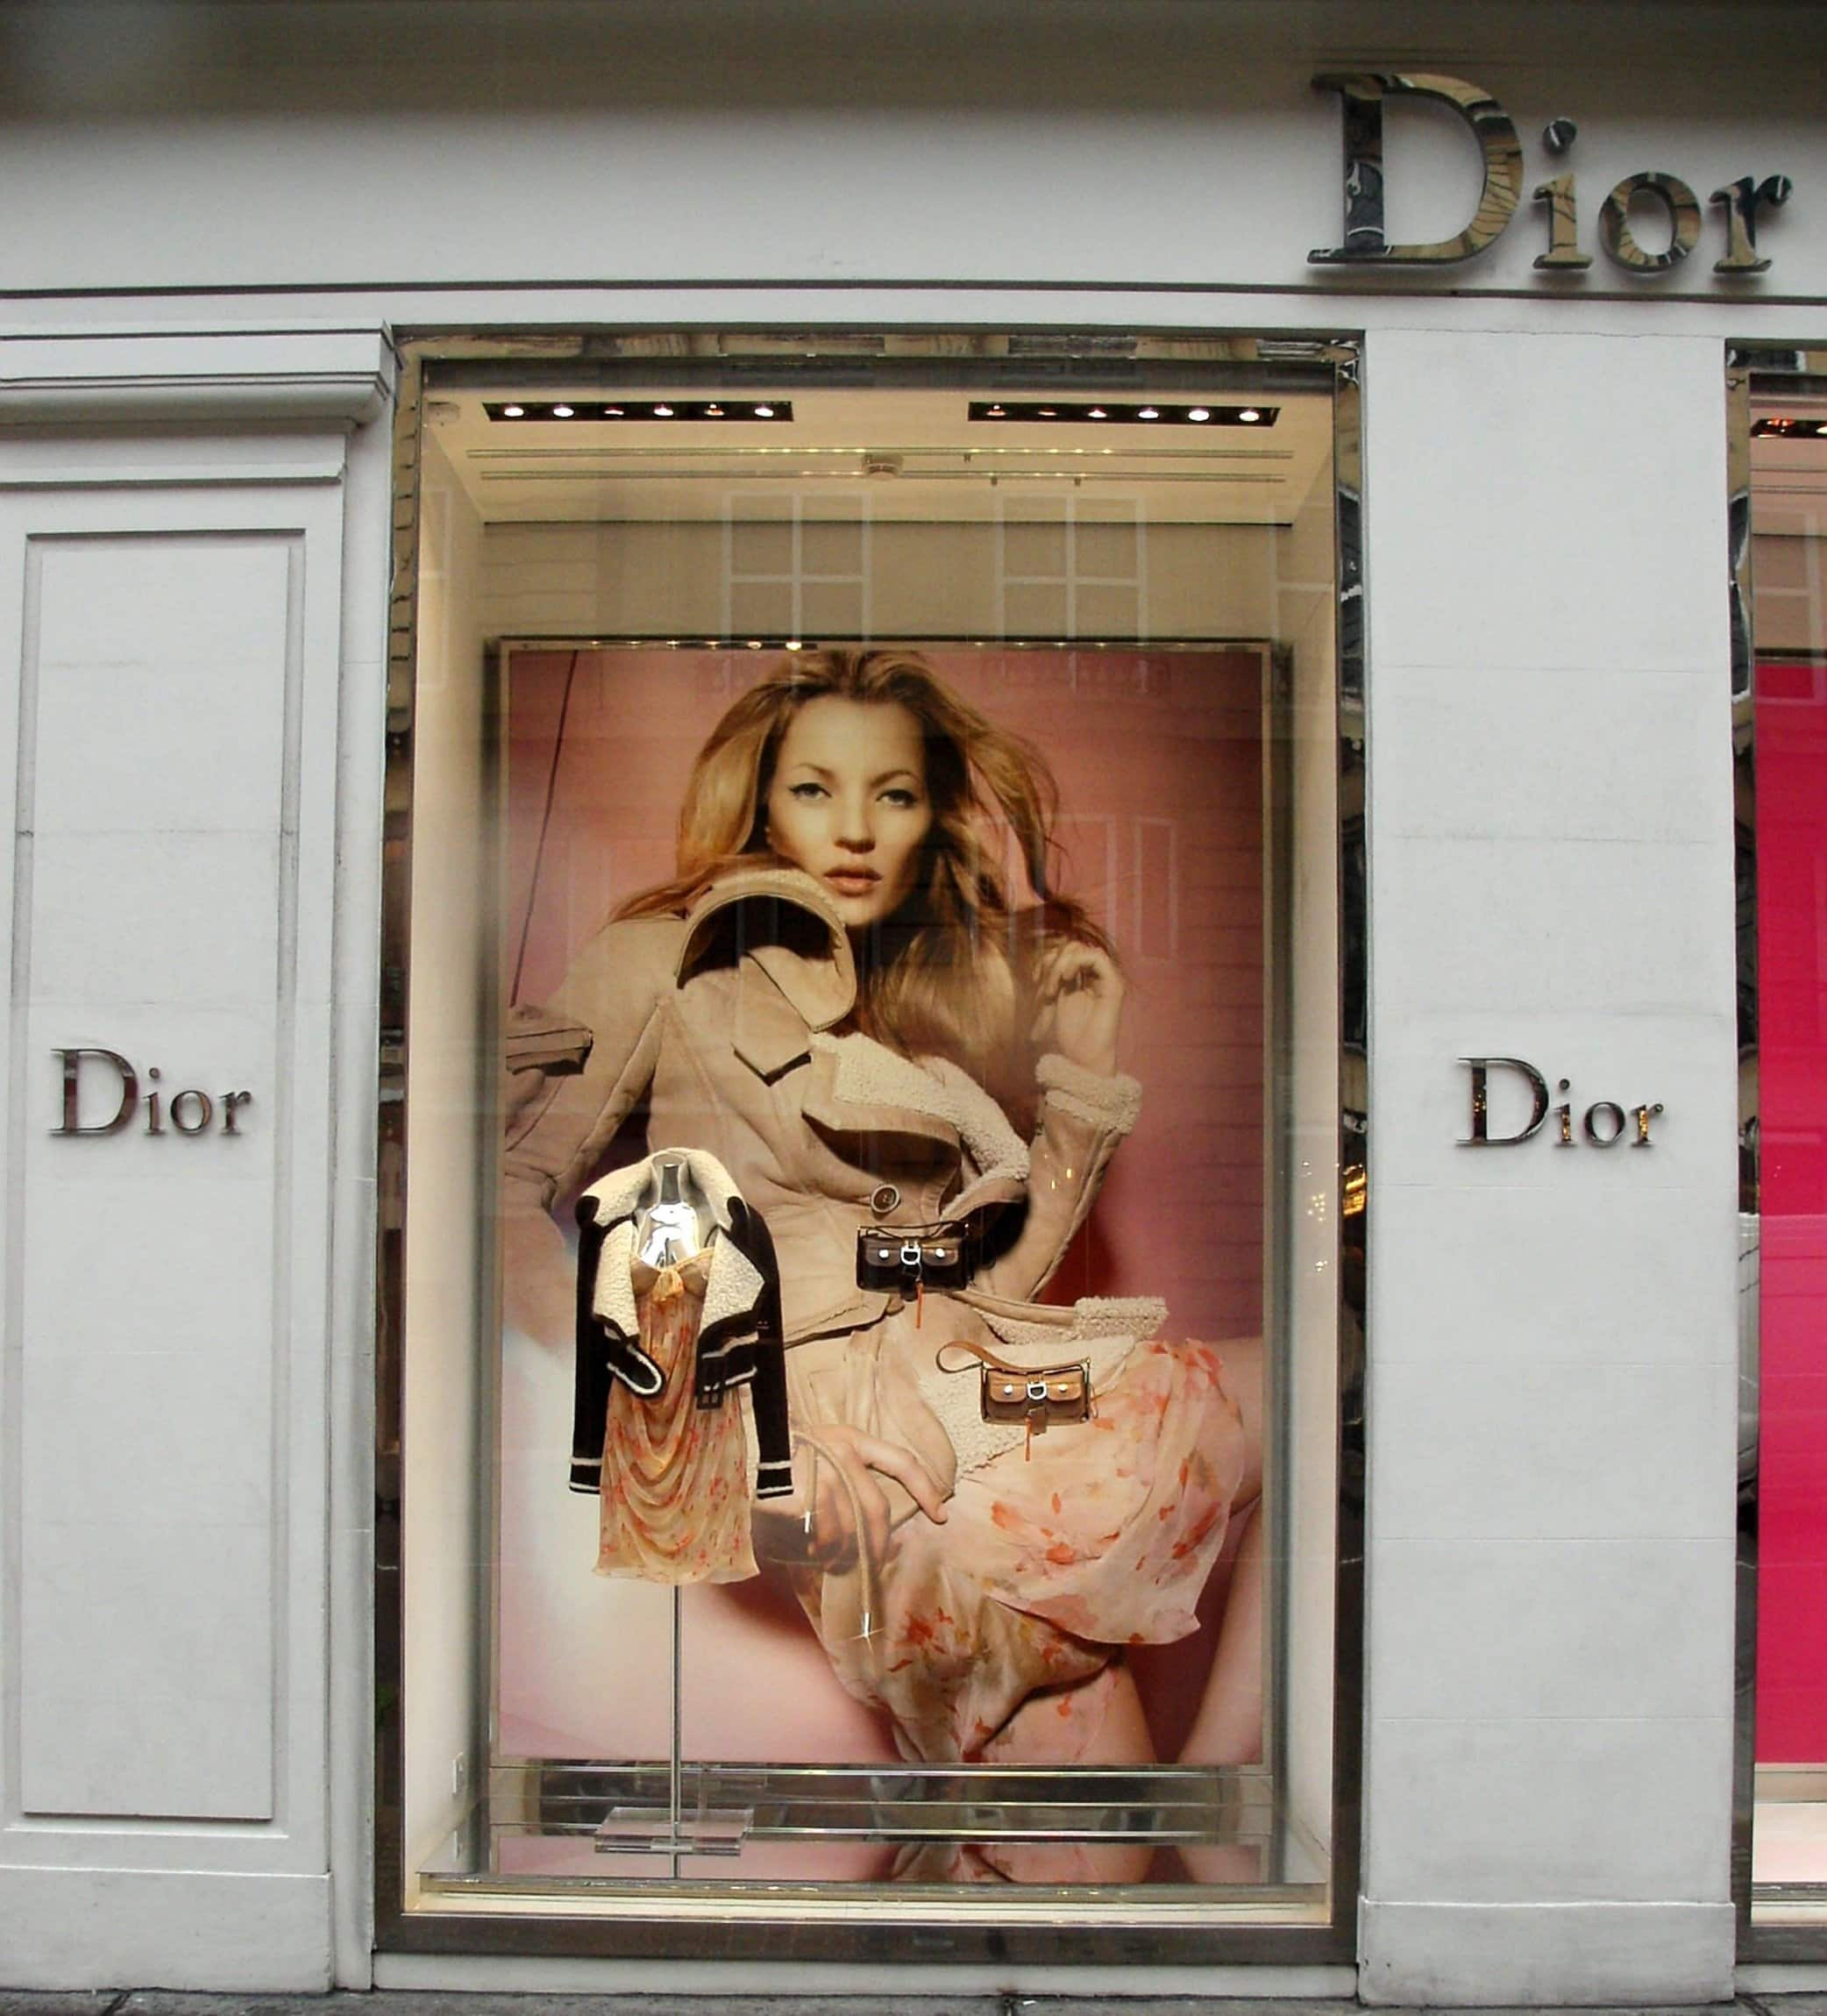 Kate Moss appears in an advertising campaign for Dior in central London